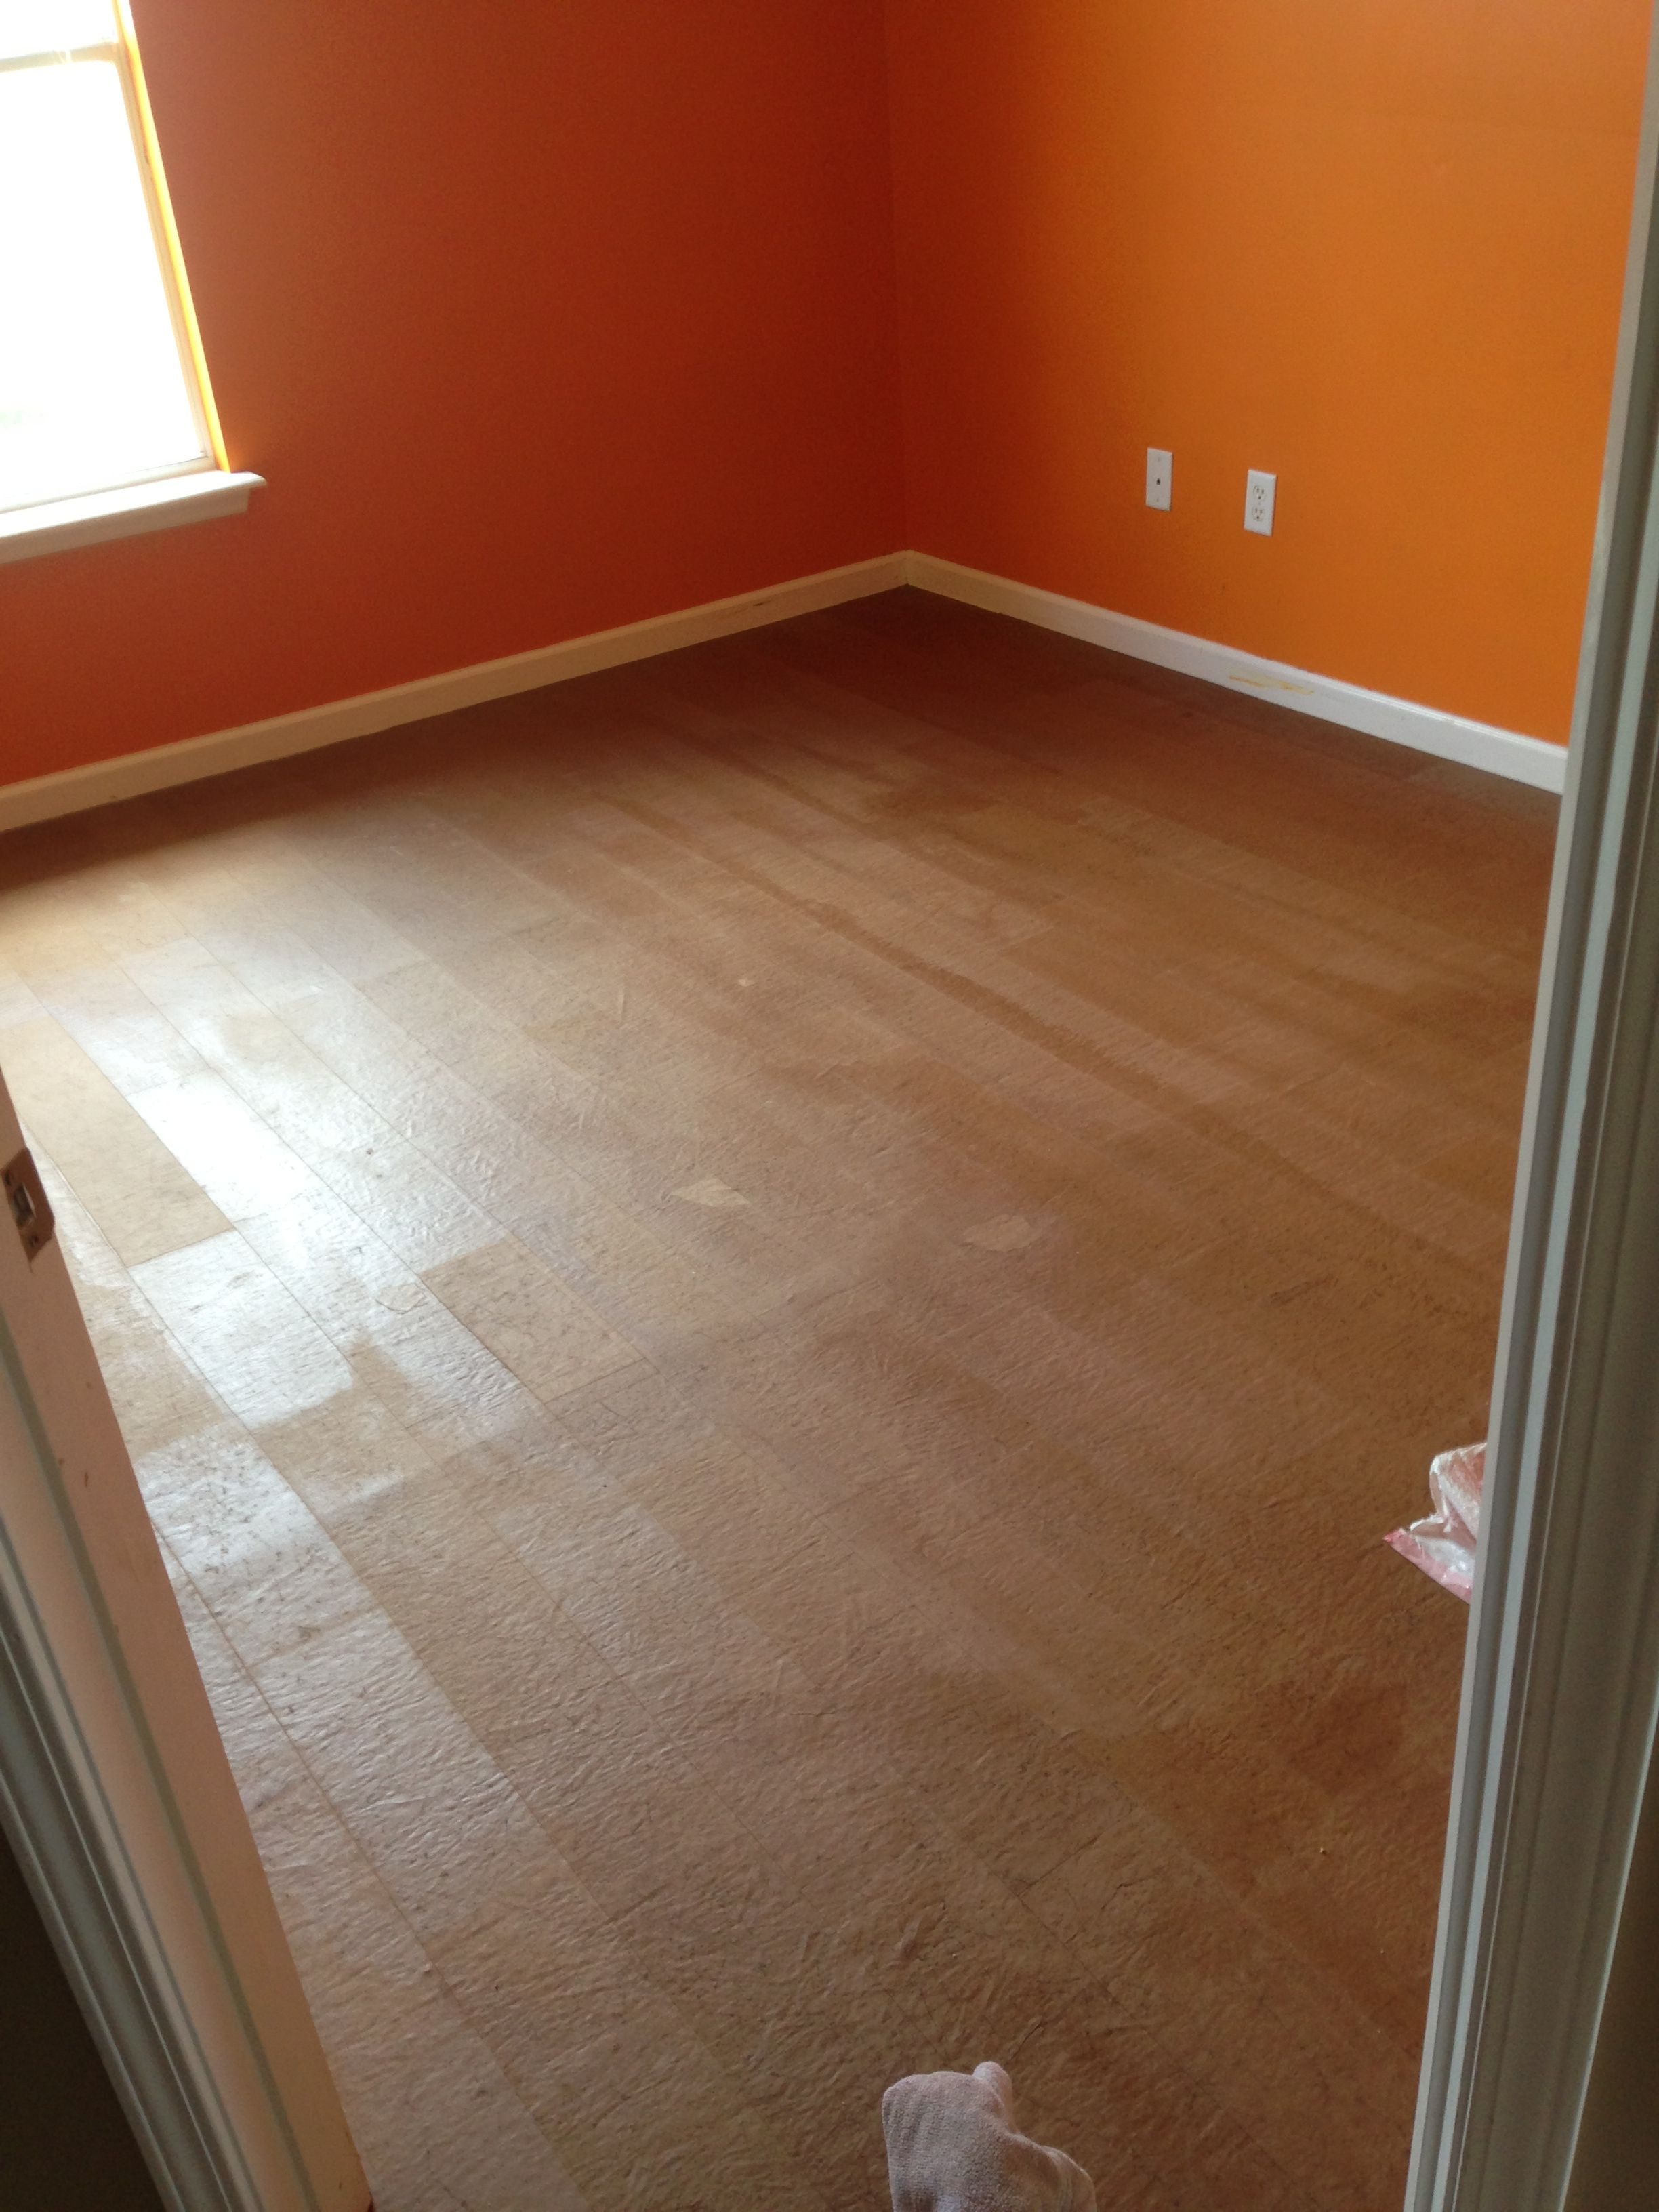 Got the paper floors all laid once glue dries i will stain